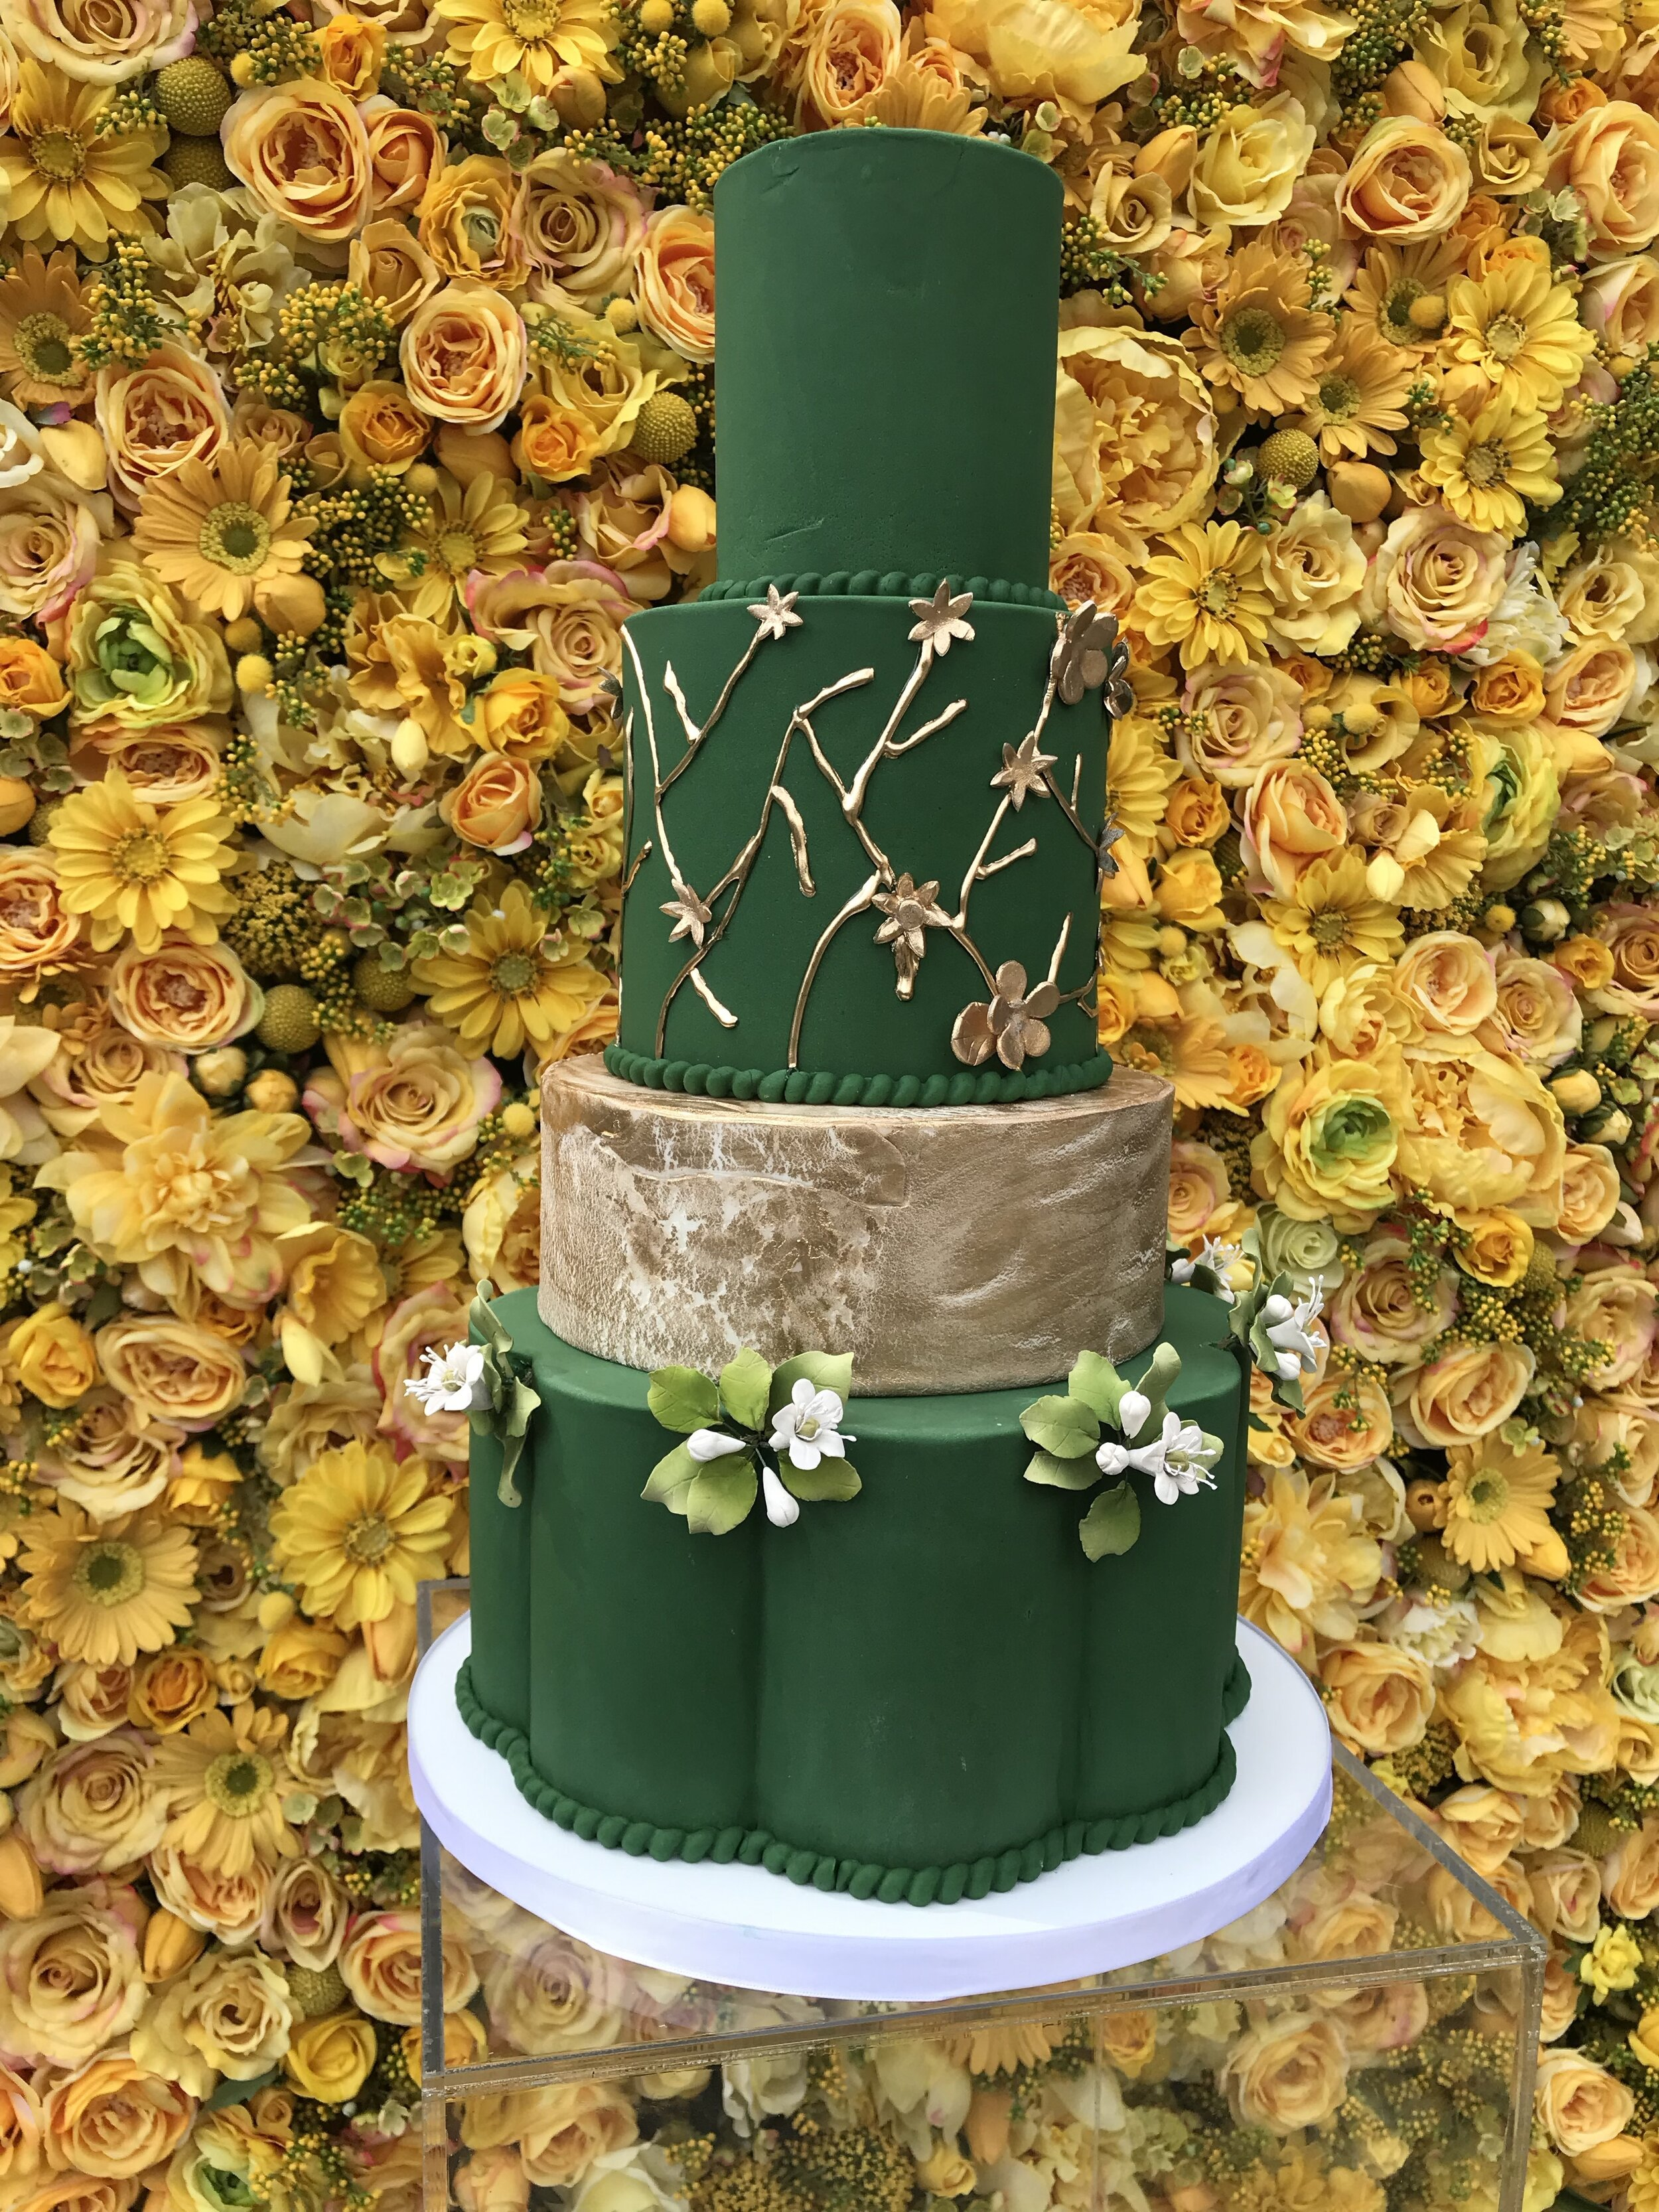 Silk Flower Wall with Cake